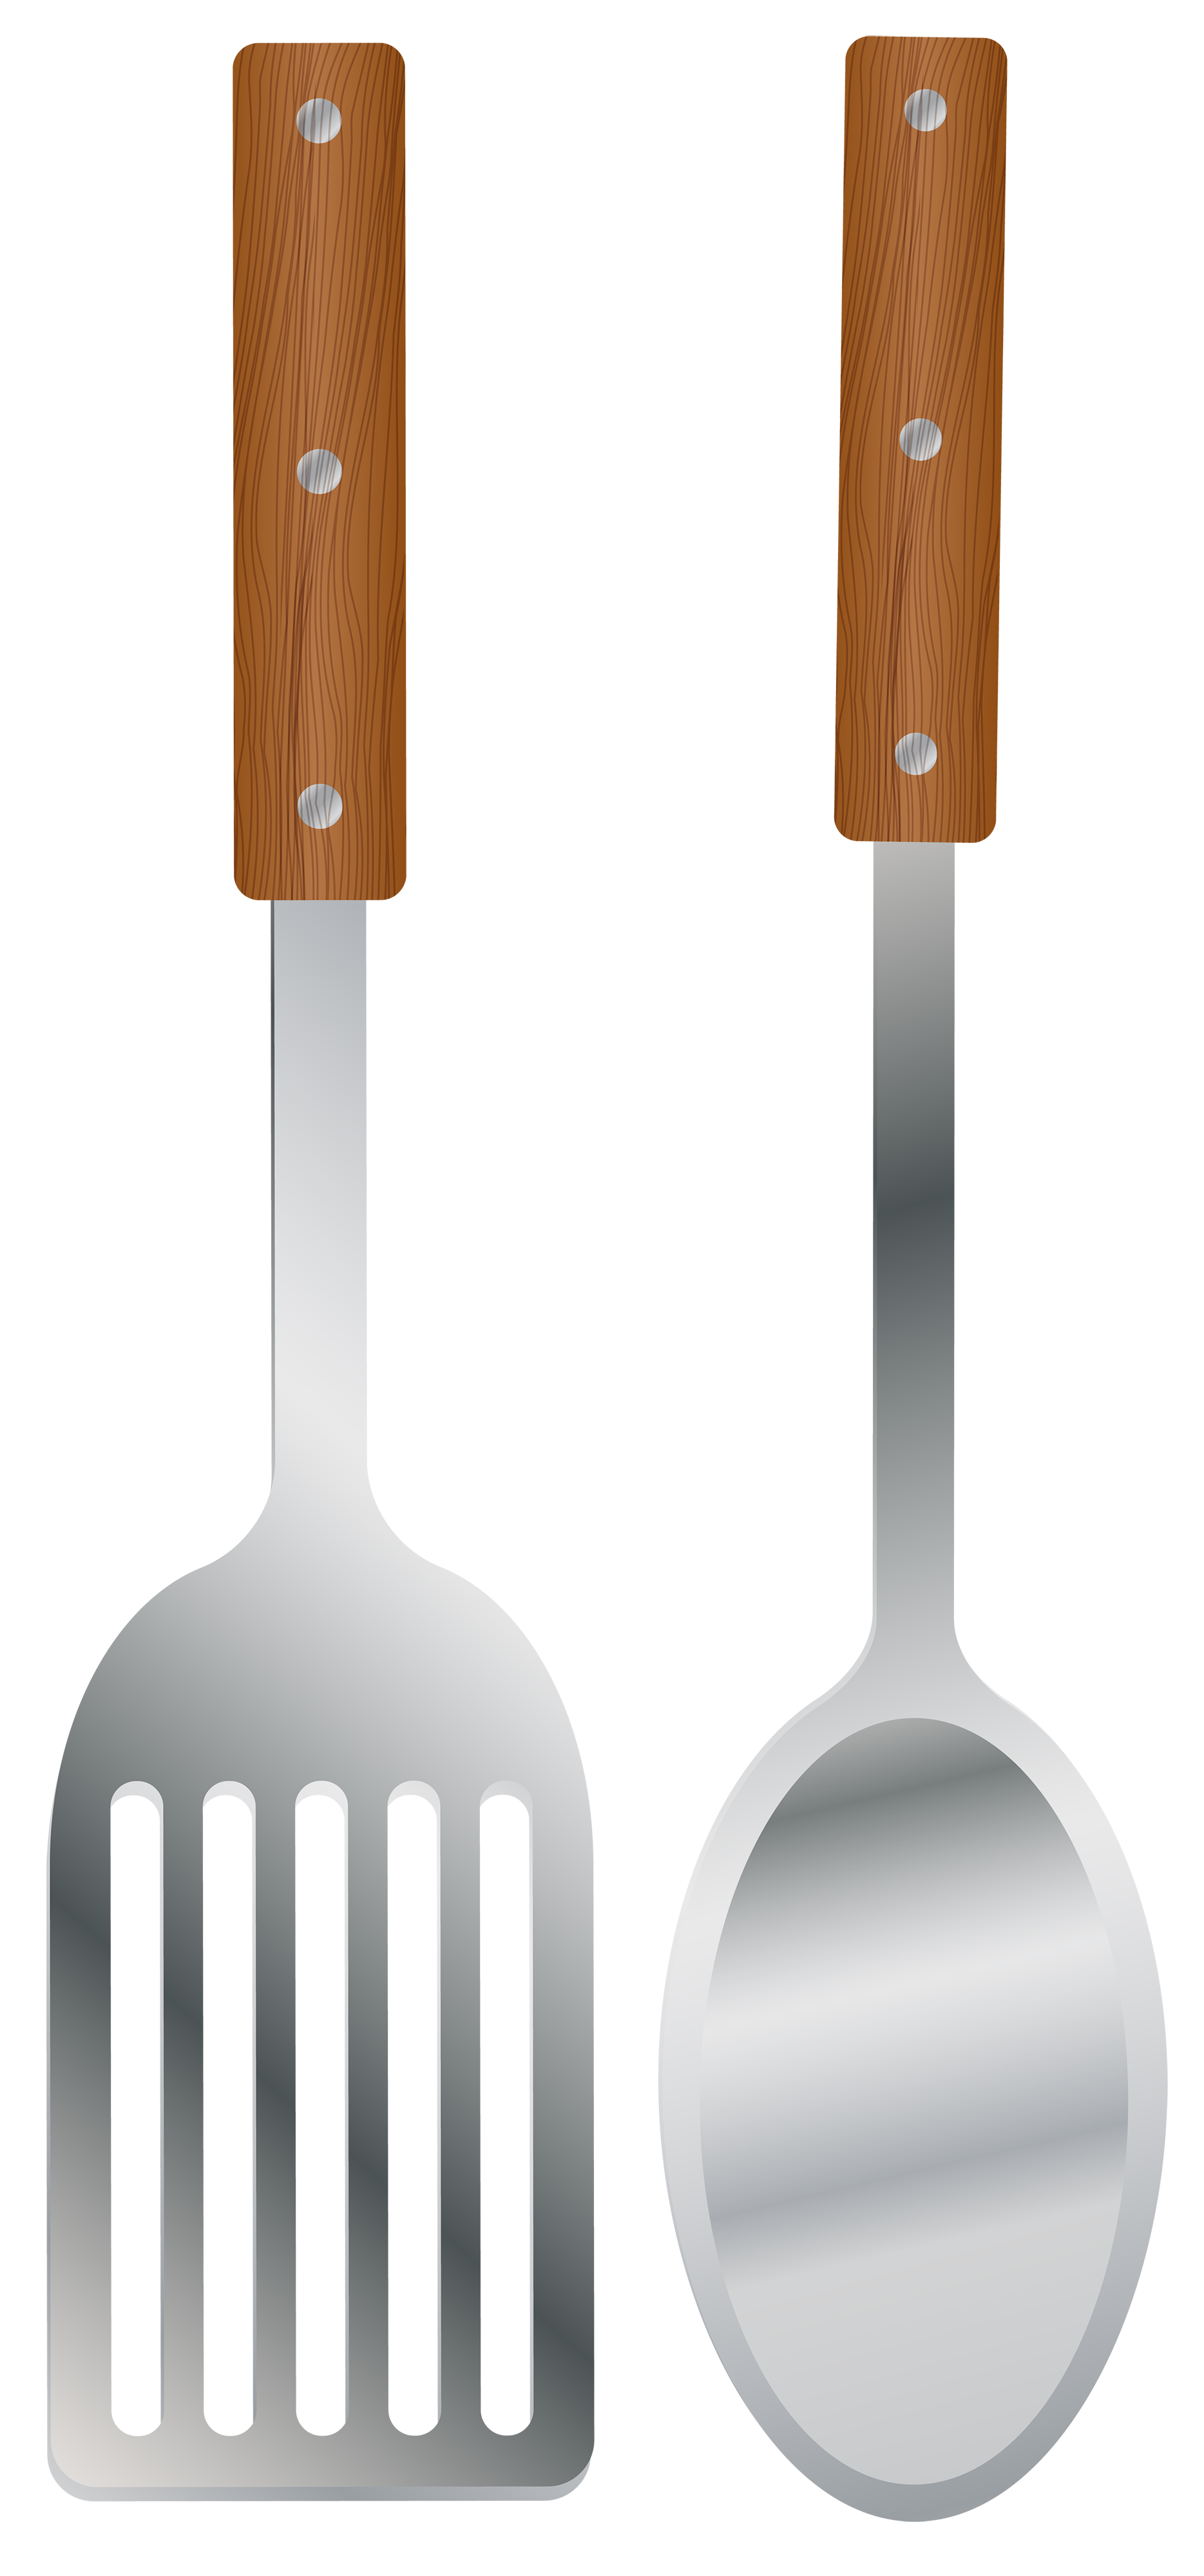 Fork spoon house clipart clip art royalty free Kitchen Spoon and Spatula PNG Clipart - Best WEB Clipart clip art royalty free